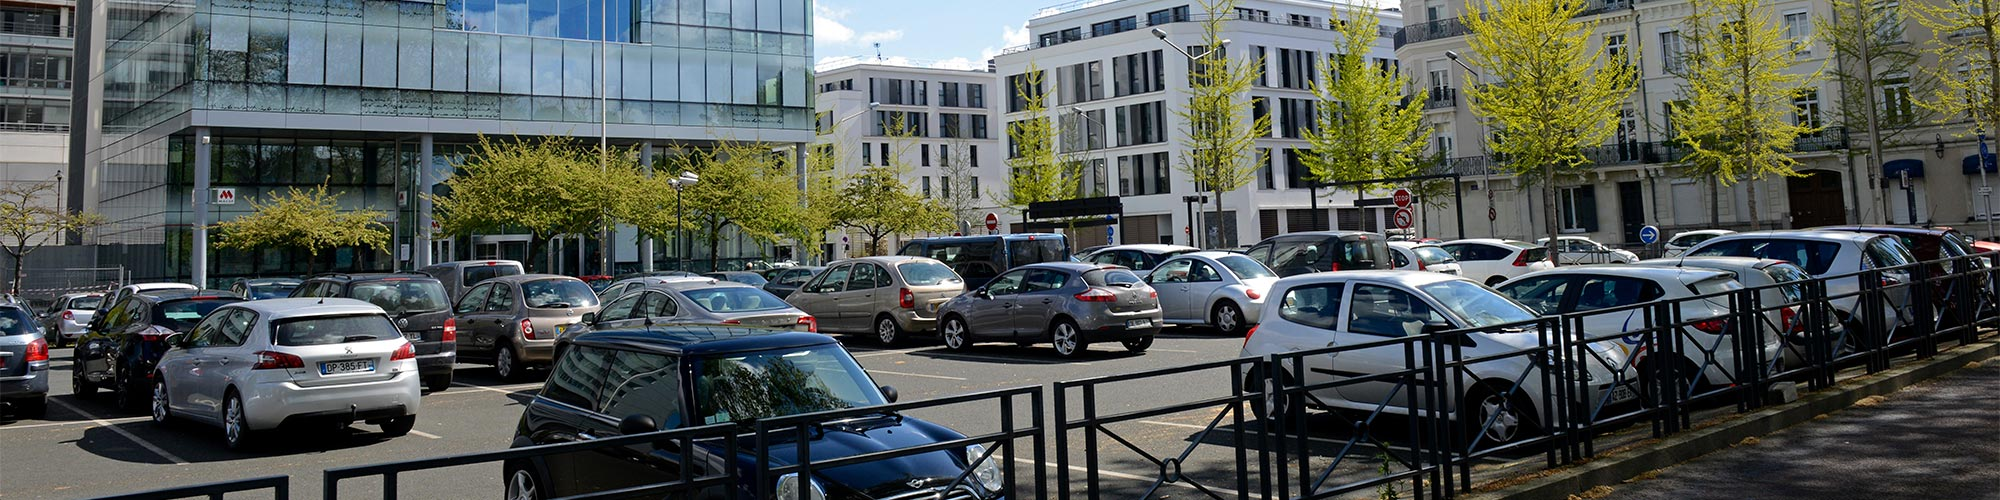 parking-mitterrand-angers